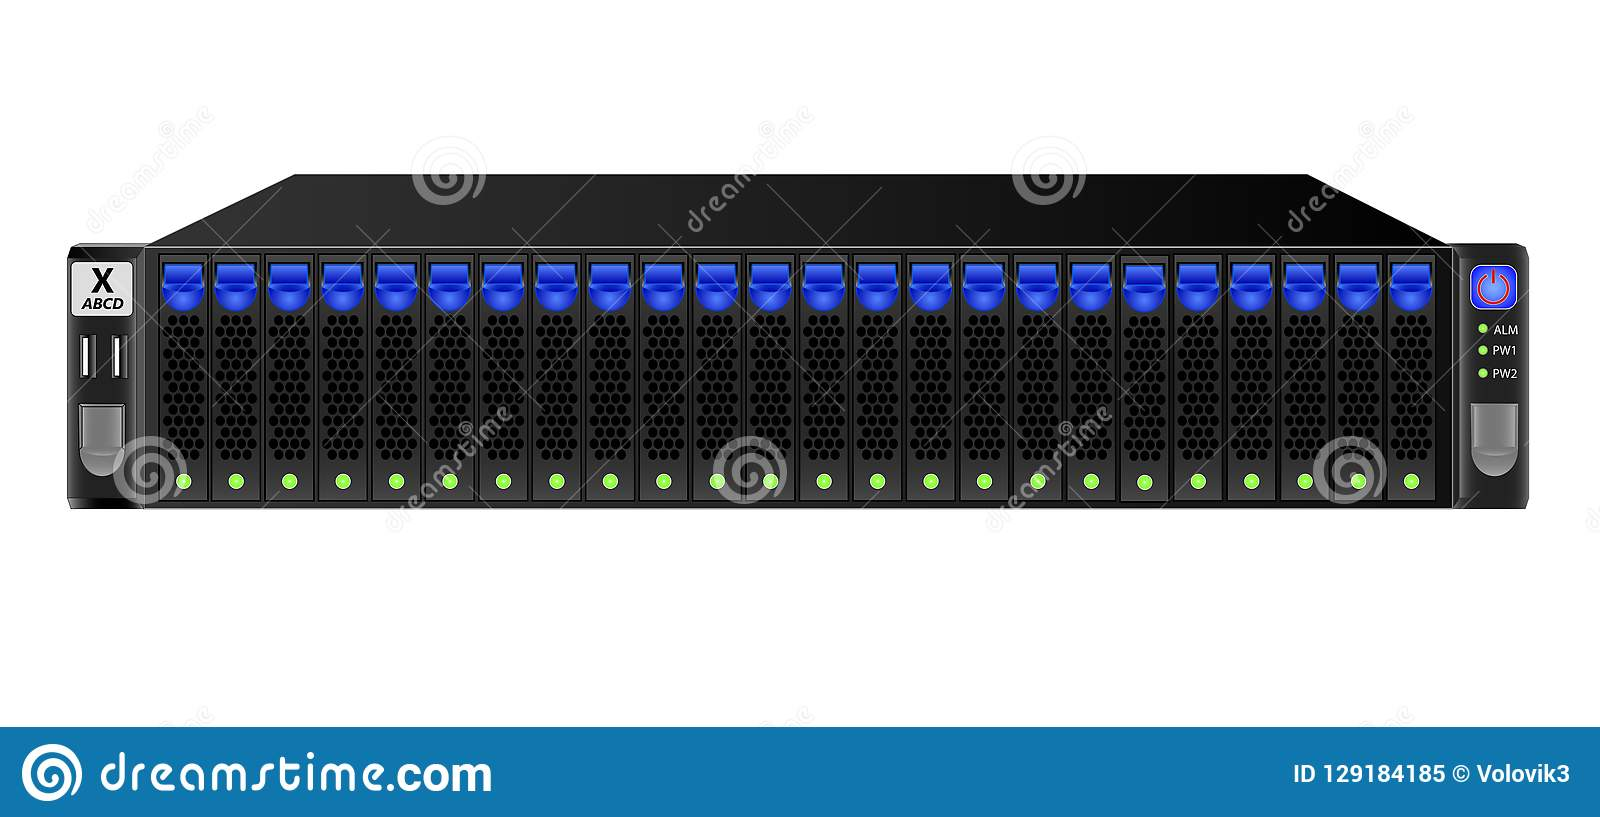 Carrier-class Server In Black For Mounting From 19-inch Rack